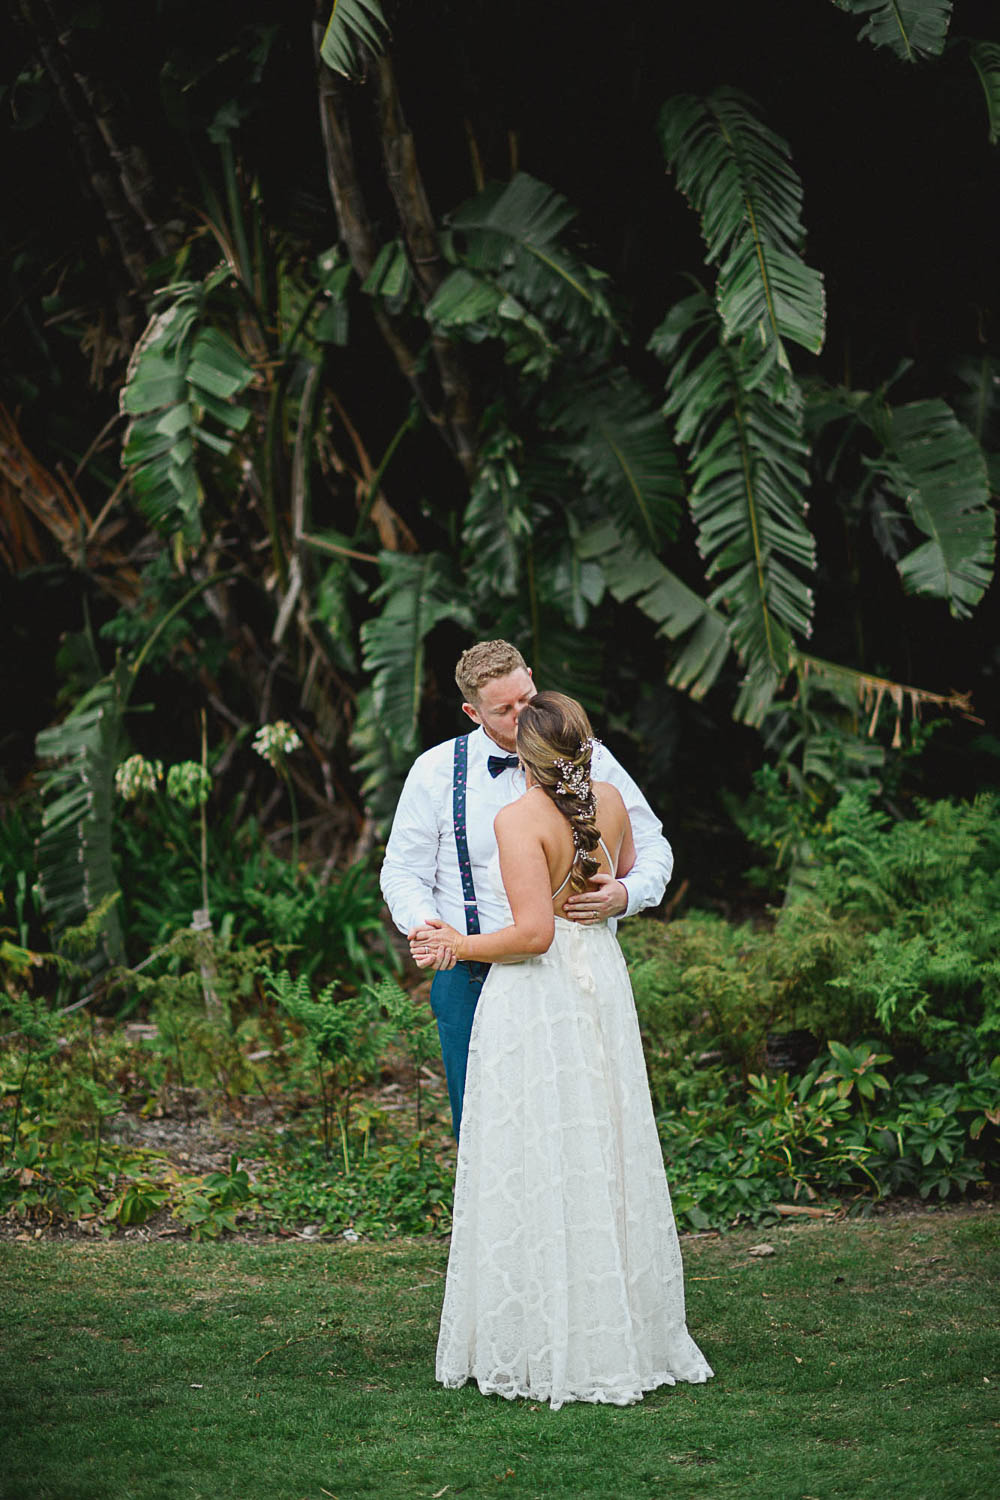 Bohemian Prints - Bohemian Wedding Jess and Matt-8.jpg